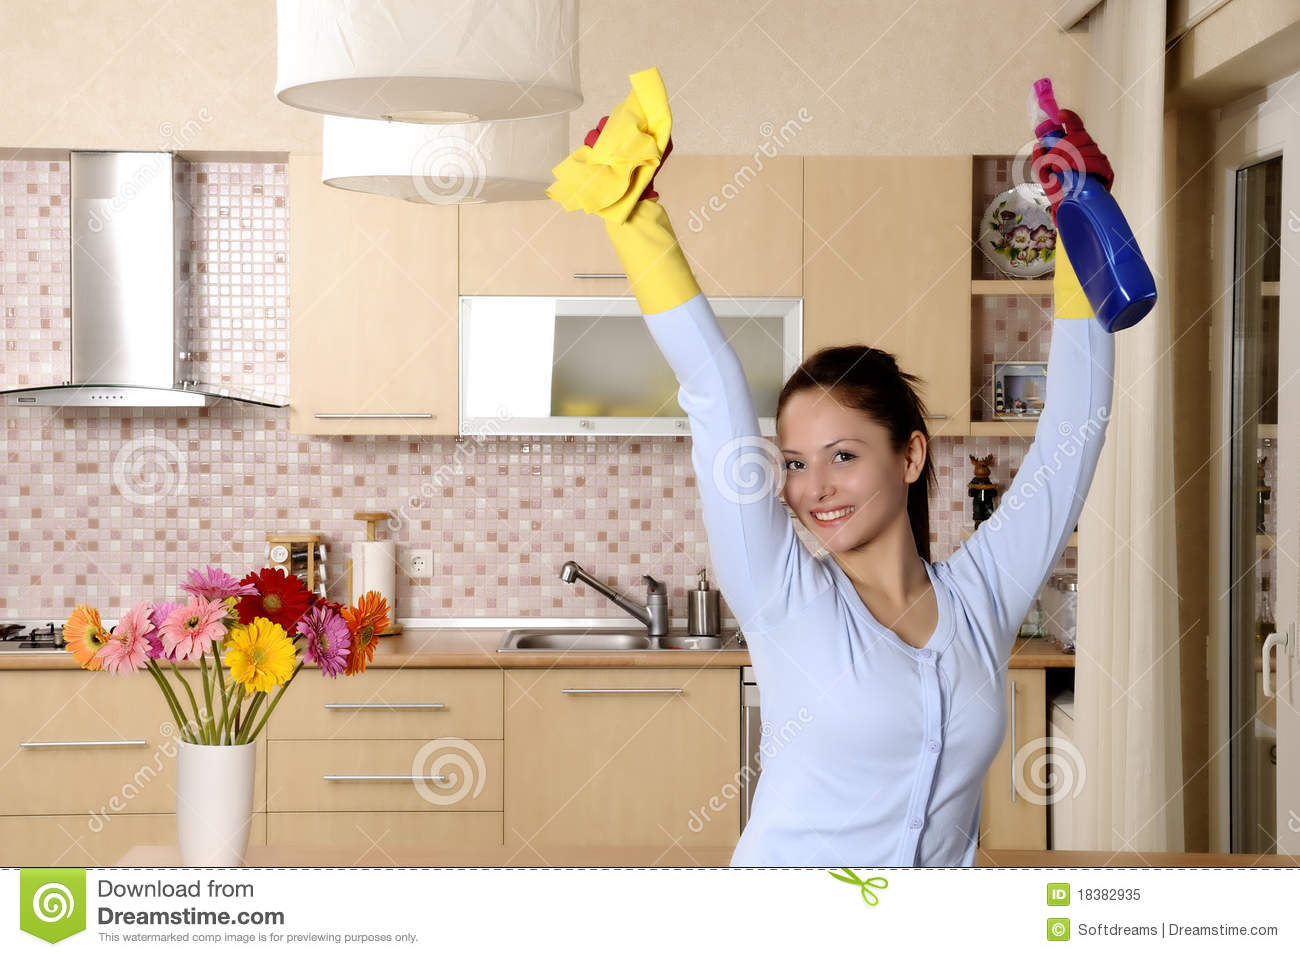 Cleaning The House clean house stock photos, images, & pictures - 118,073 images